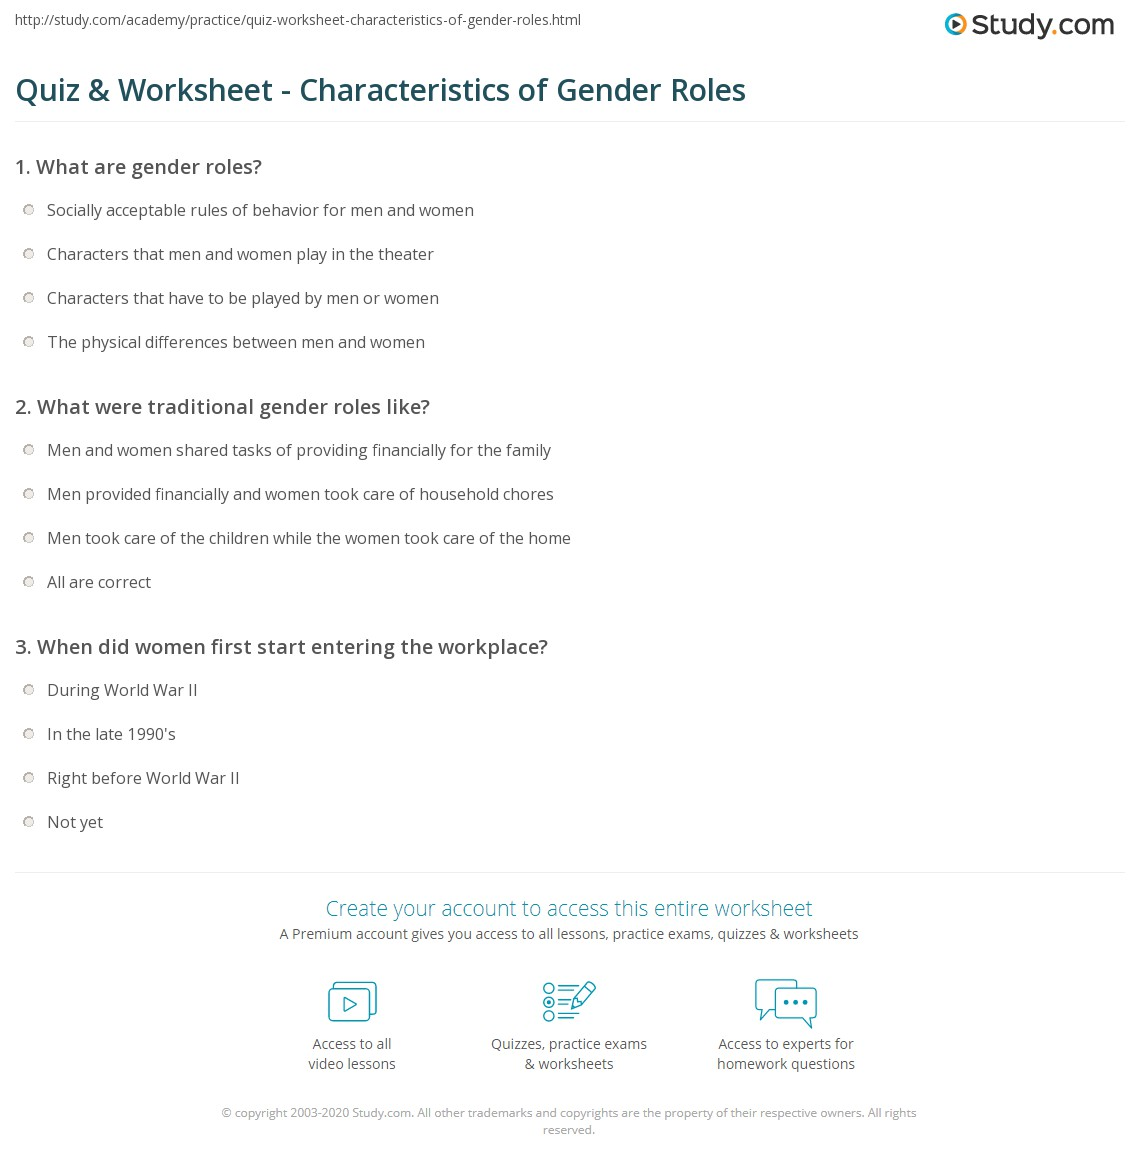 quiz & worksheet - characteristics of gender roles | study